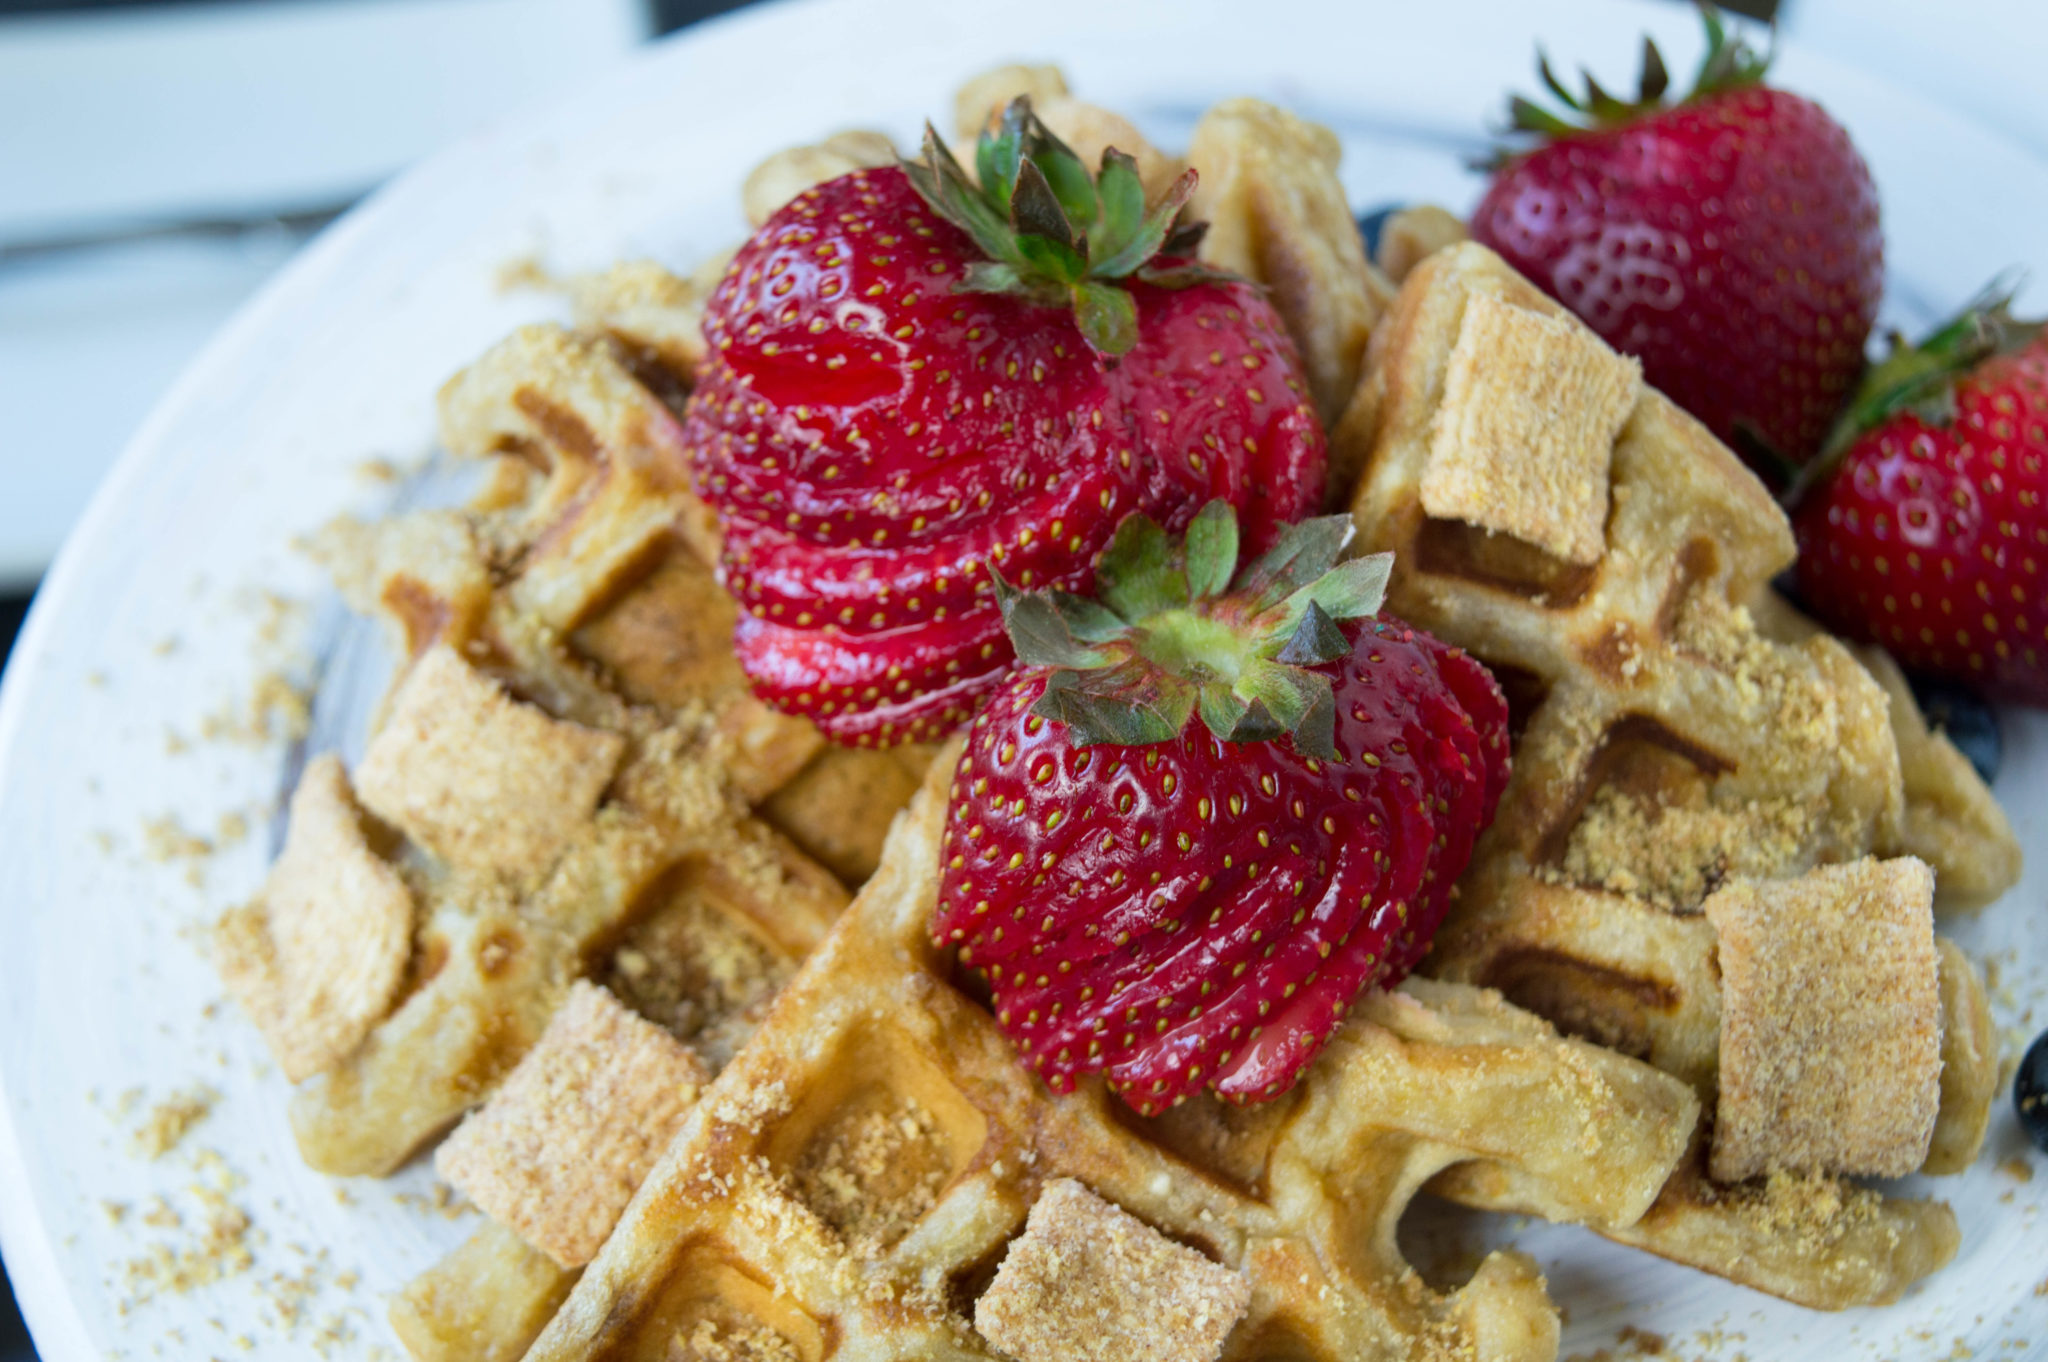 If you are a fan of Cinnamon Toast Crunch, try these Cinnamon Toast Crunch Waffles for Breakfast - they're easy to make and delicious!